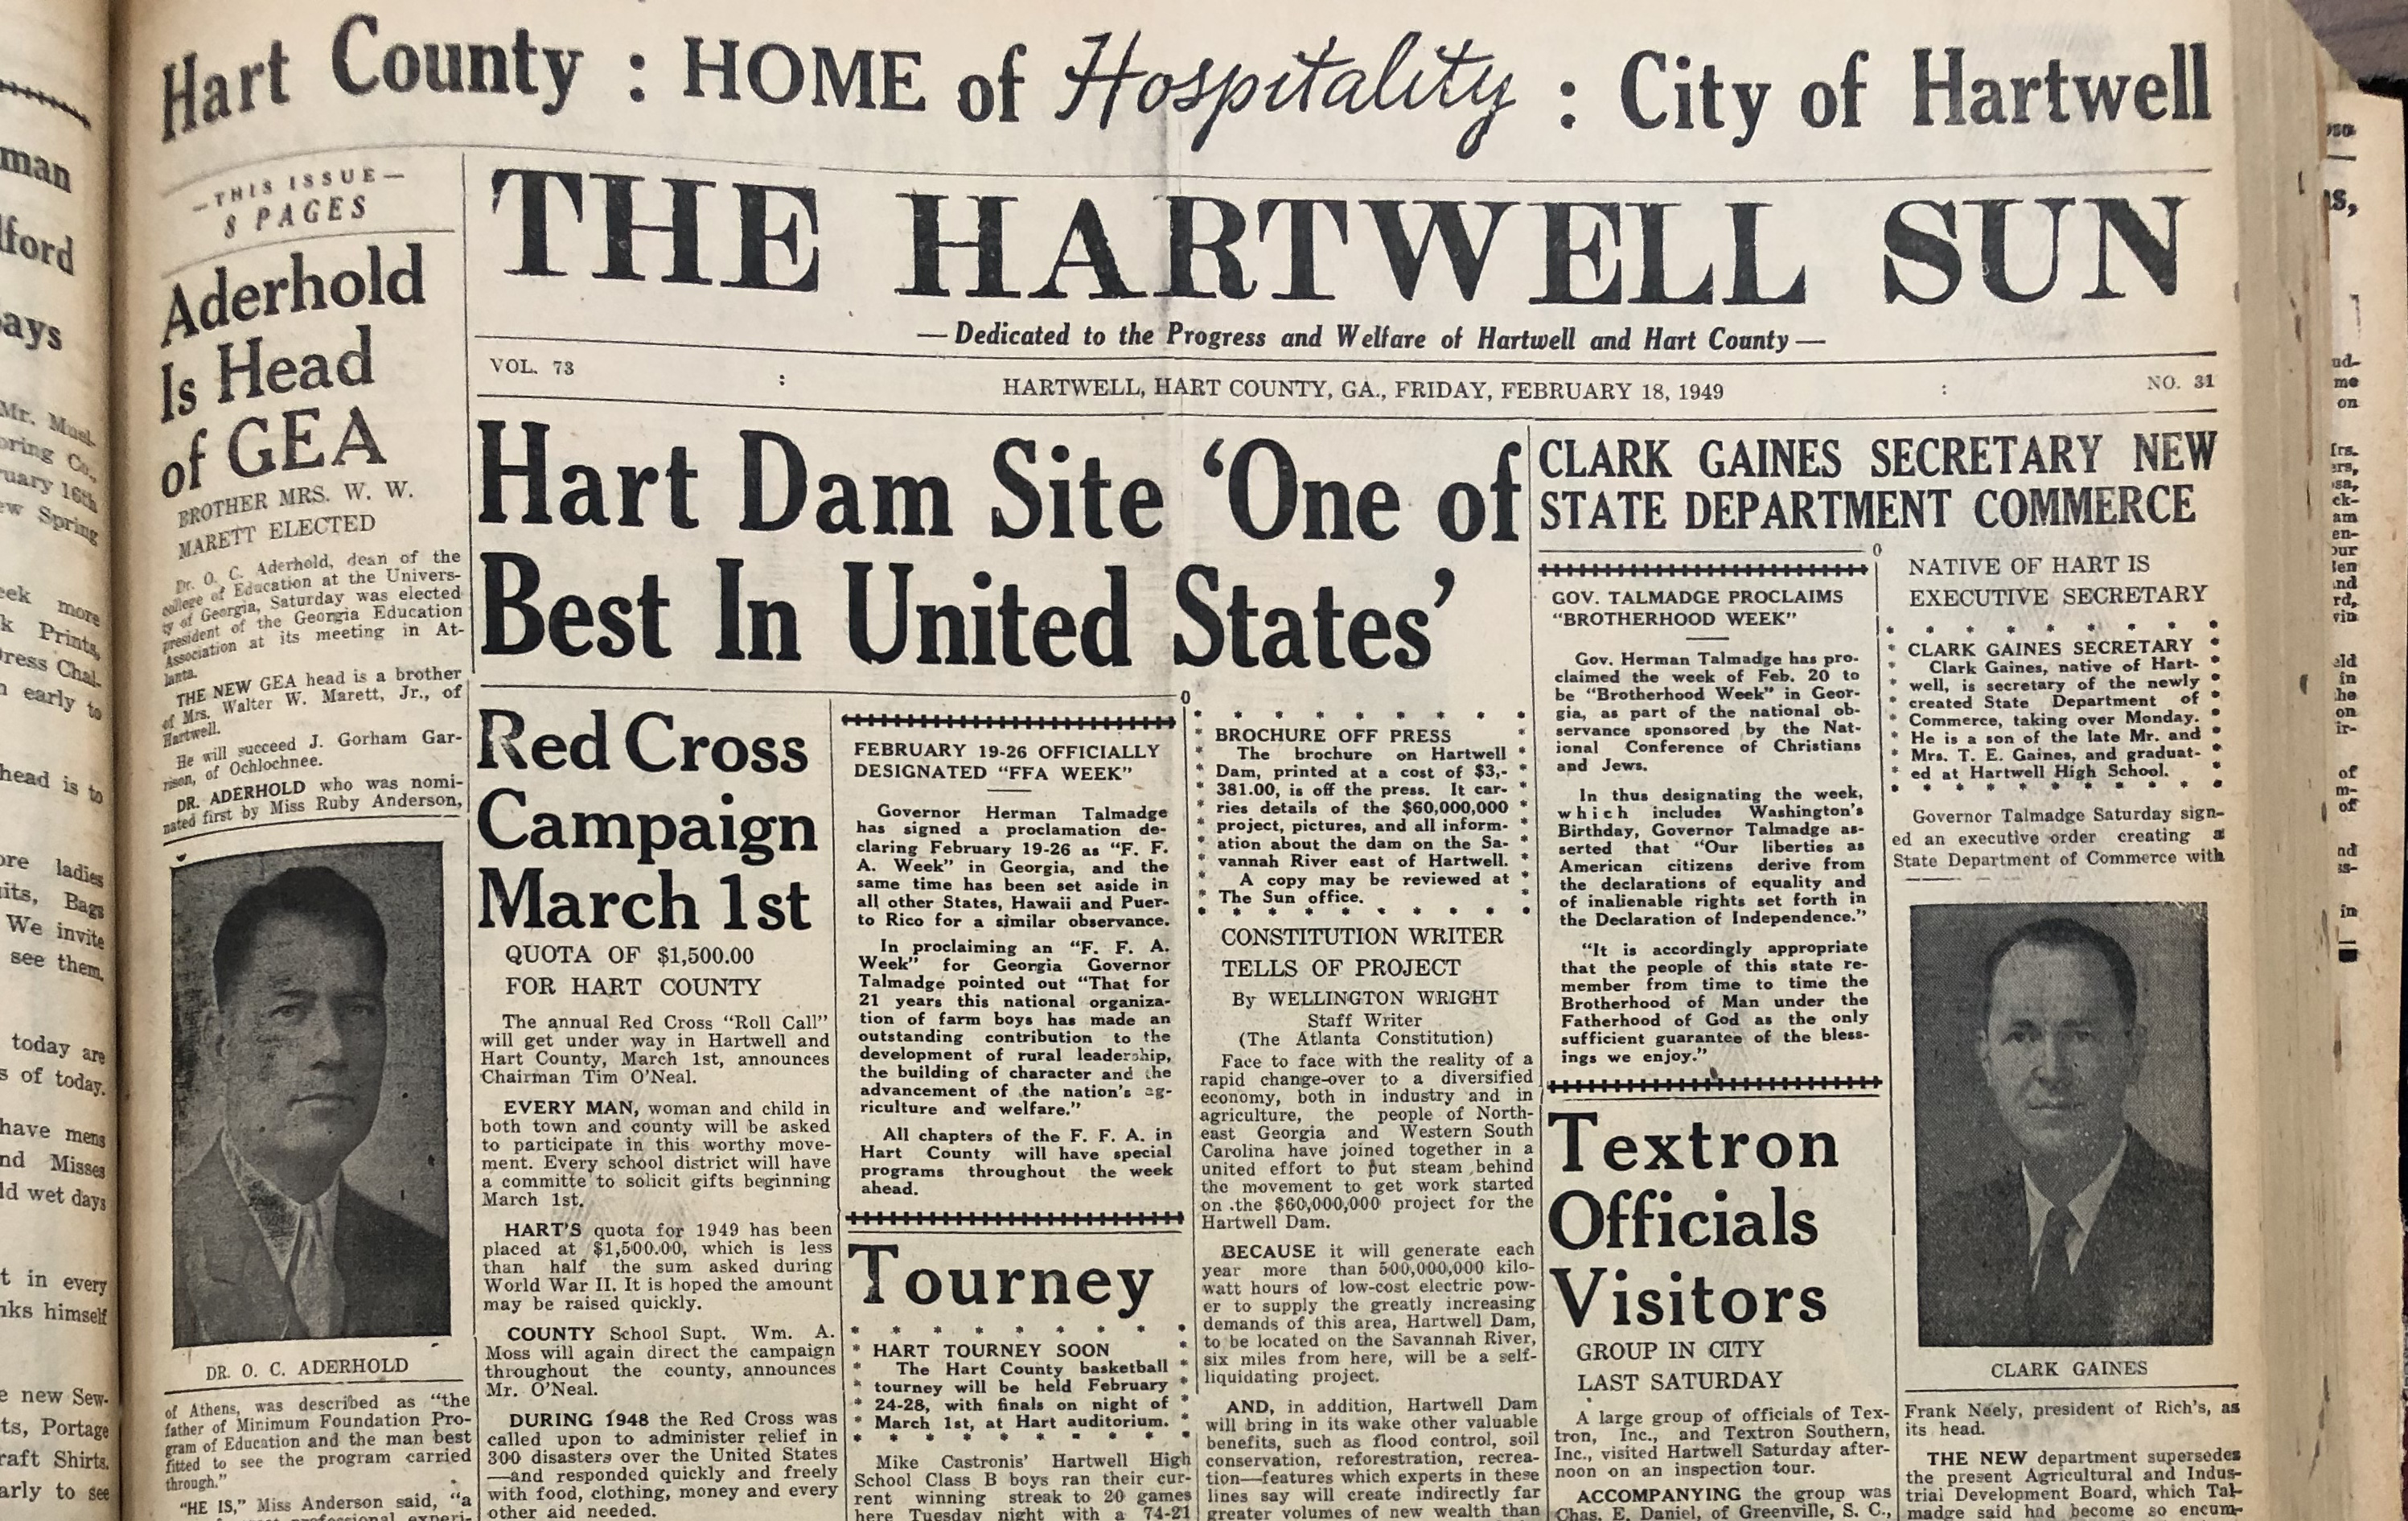 The Hartwell Sun in 1949